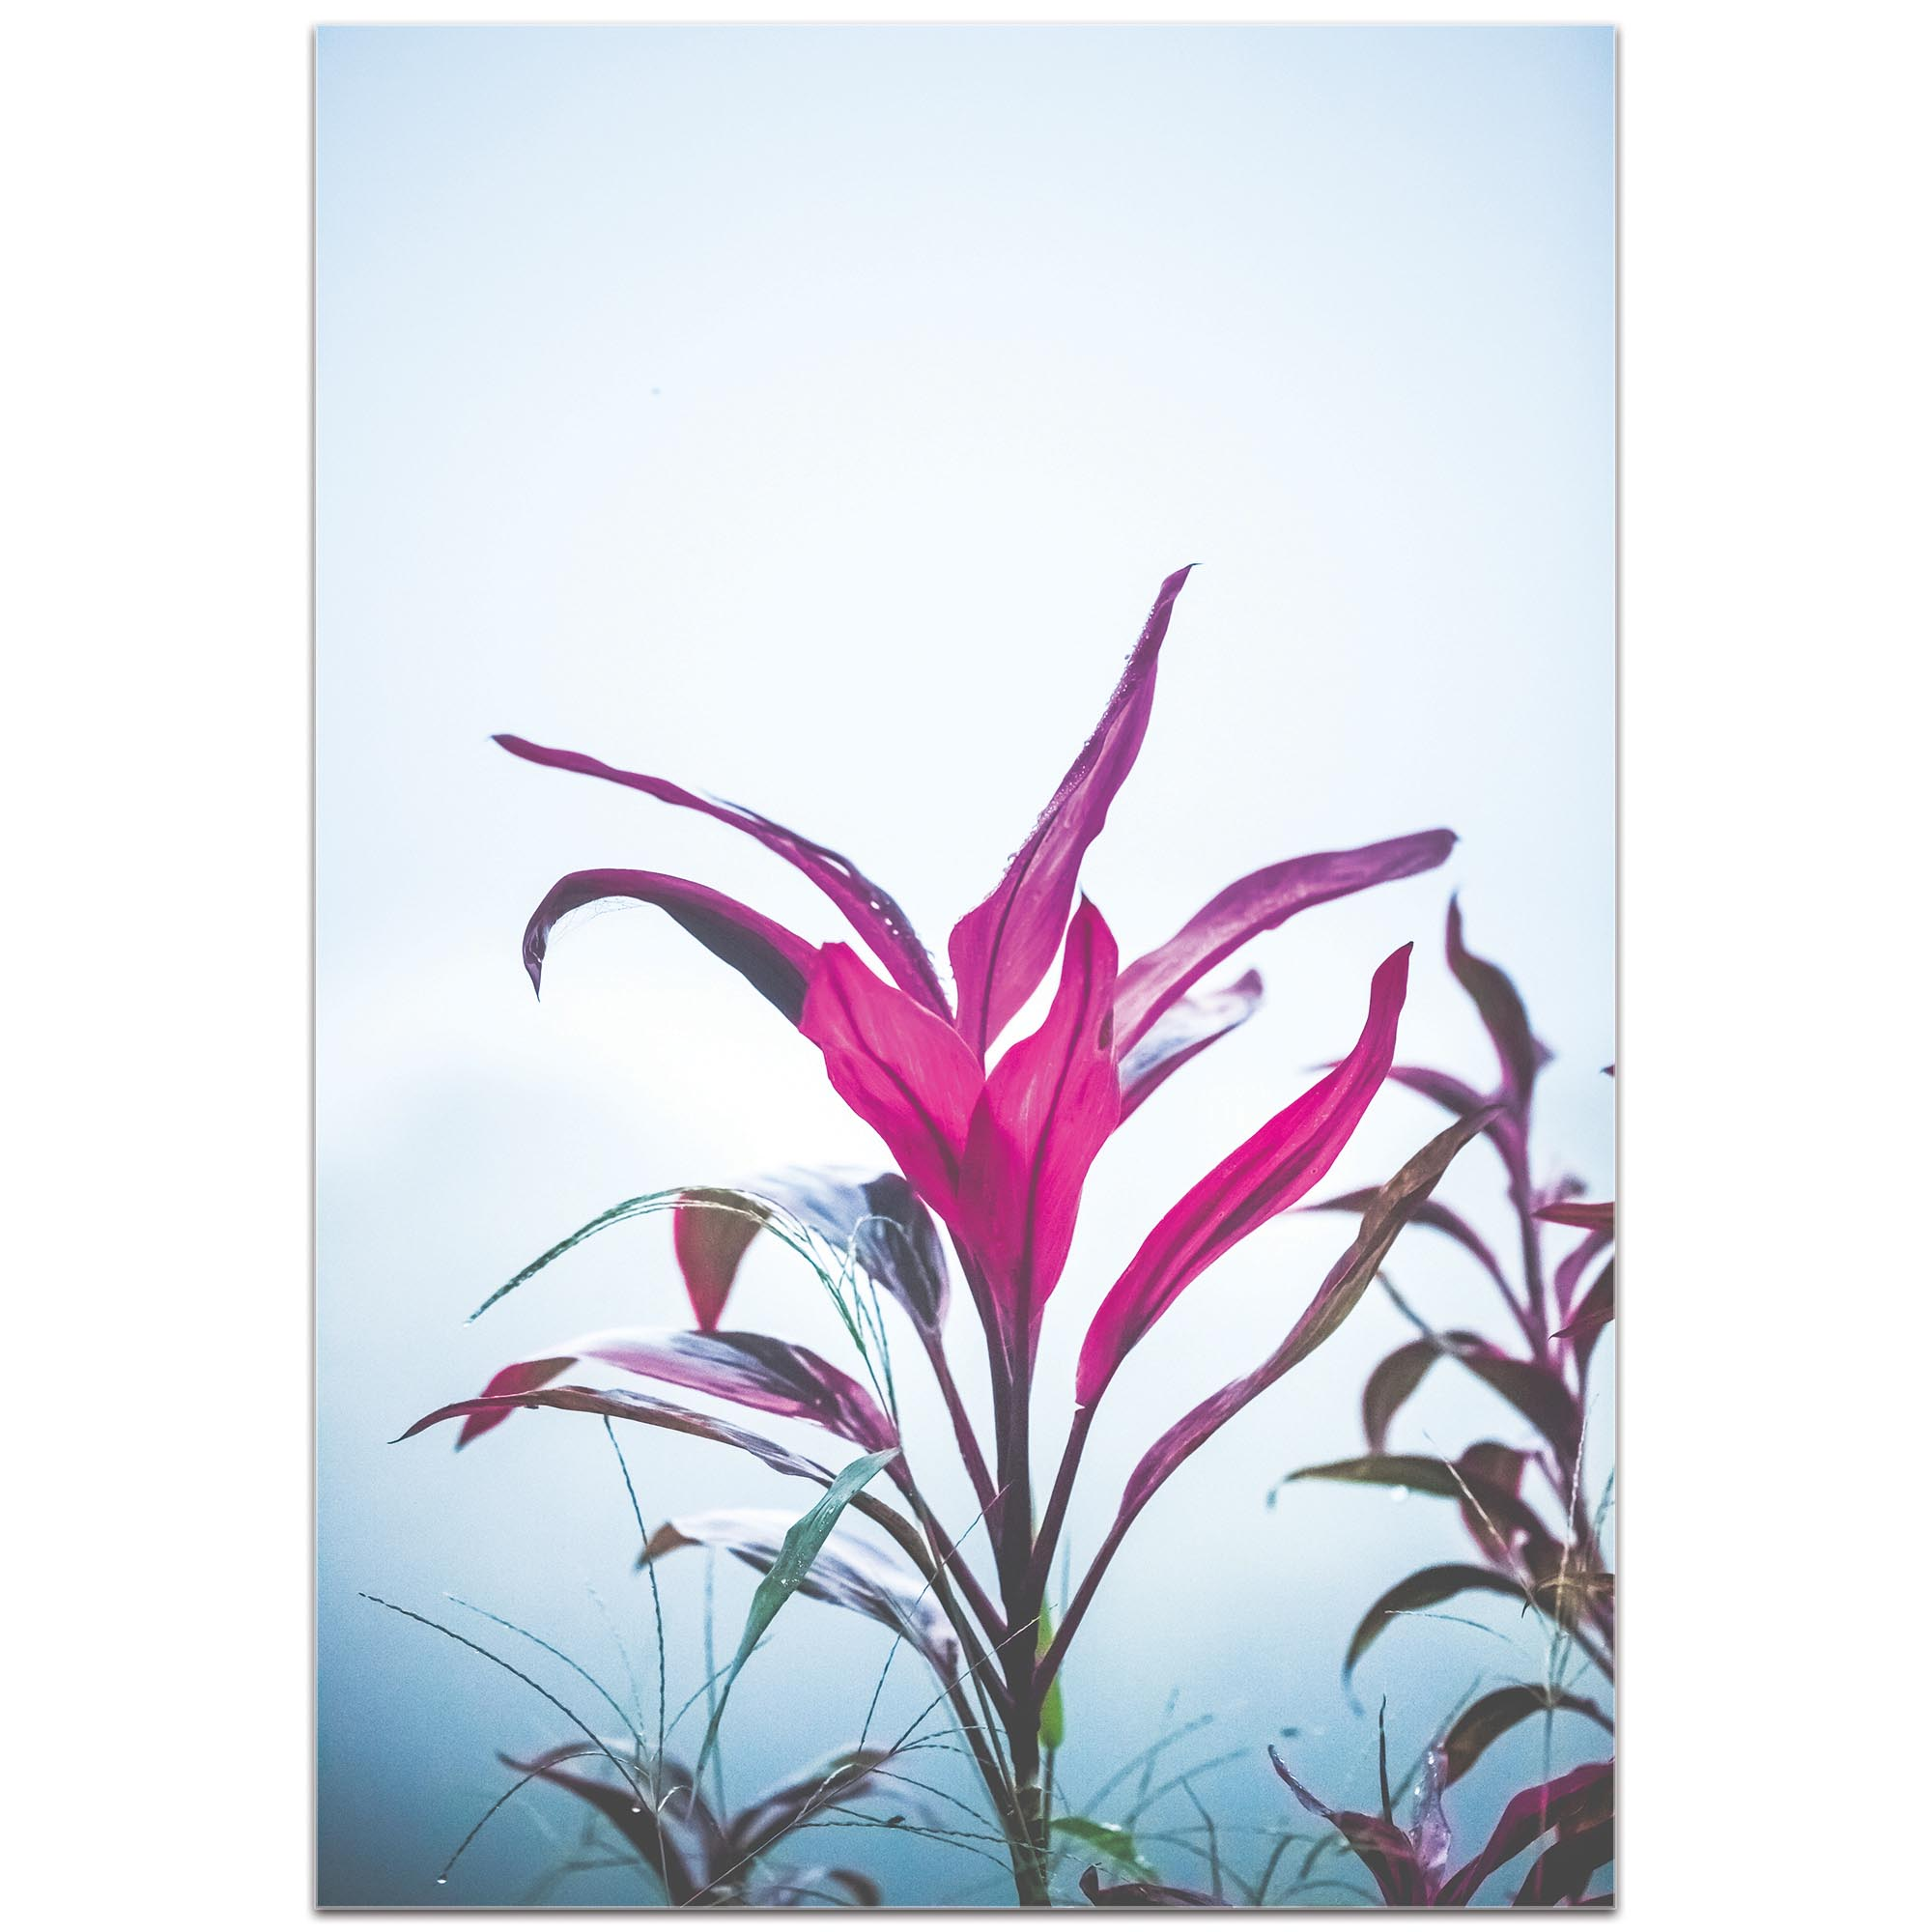 Nature Photography 'Magenta Leaves' - Flower Blossom Art on Metal or Plexiglass - Image 2